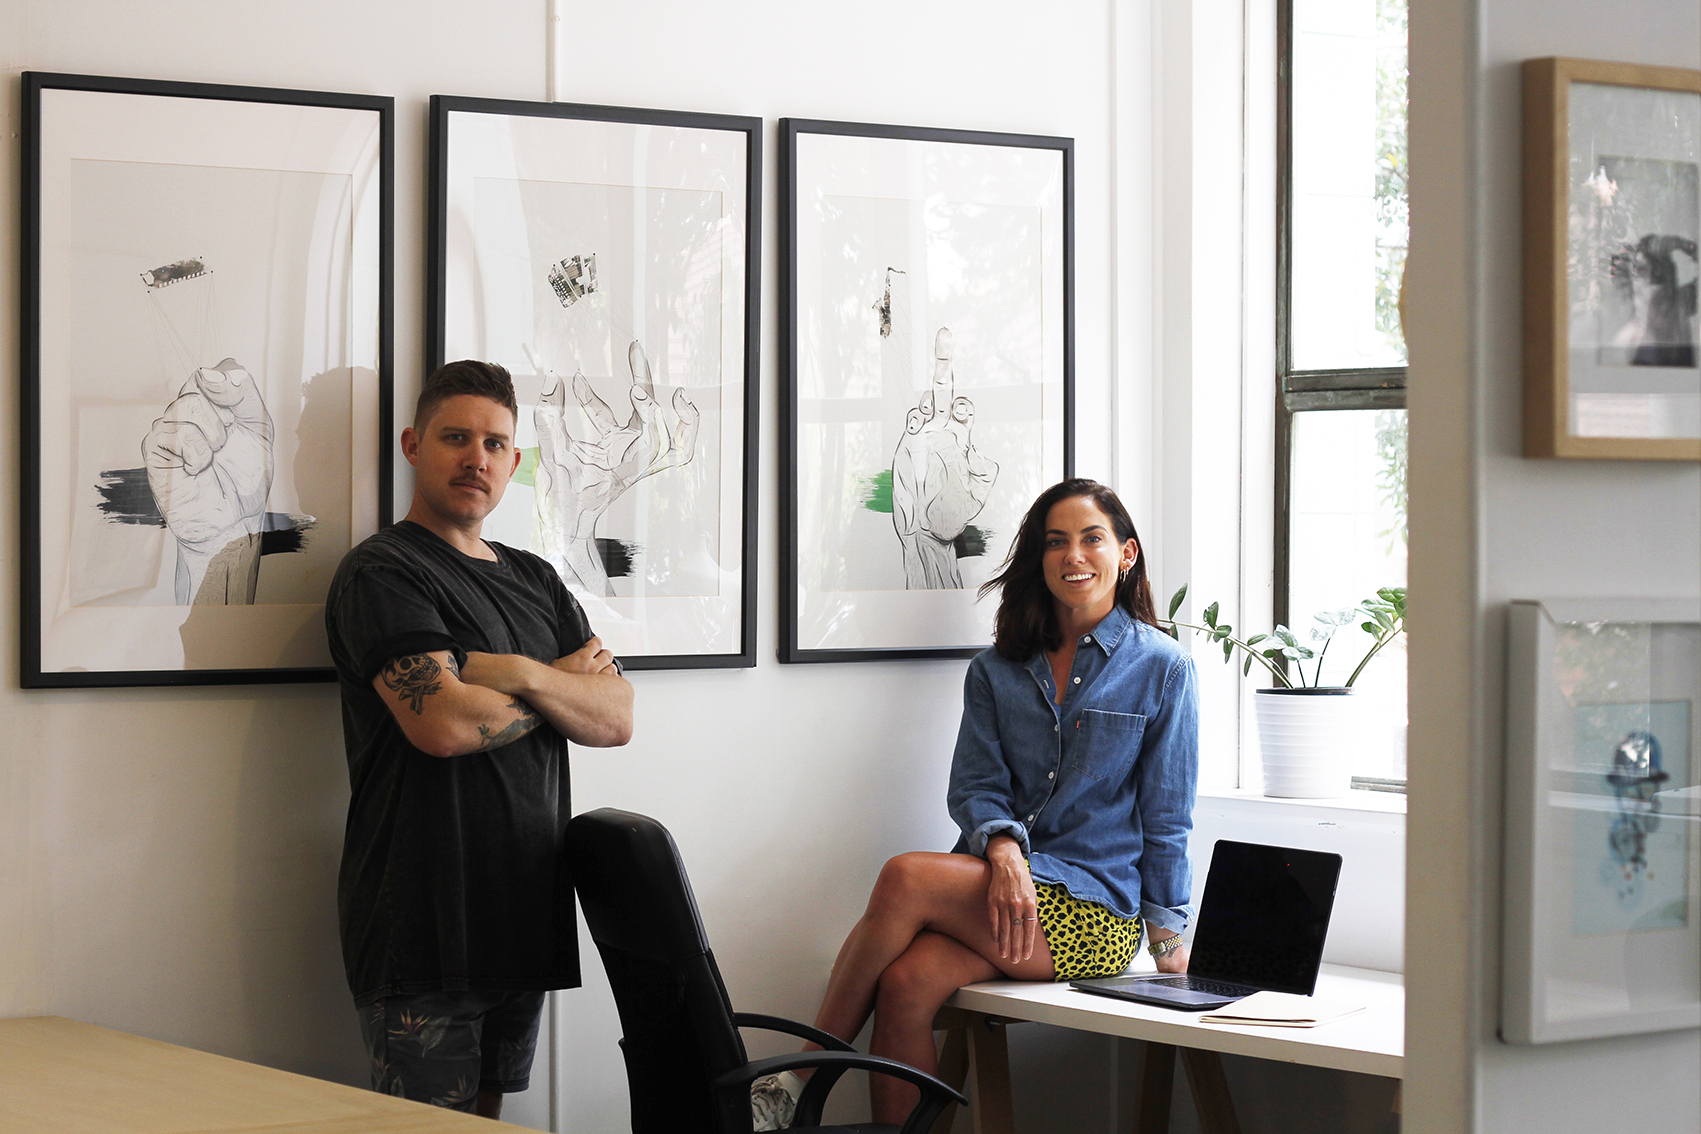 Abel and open for business: Nicole Hetherington and Simon Fowler launch creative consultancy